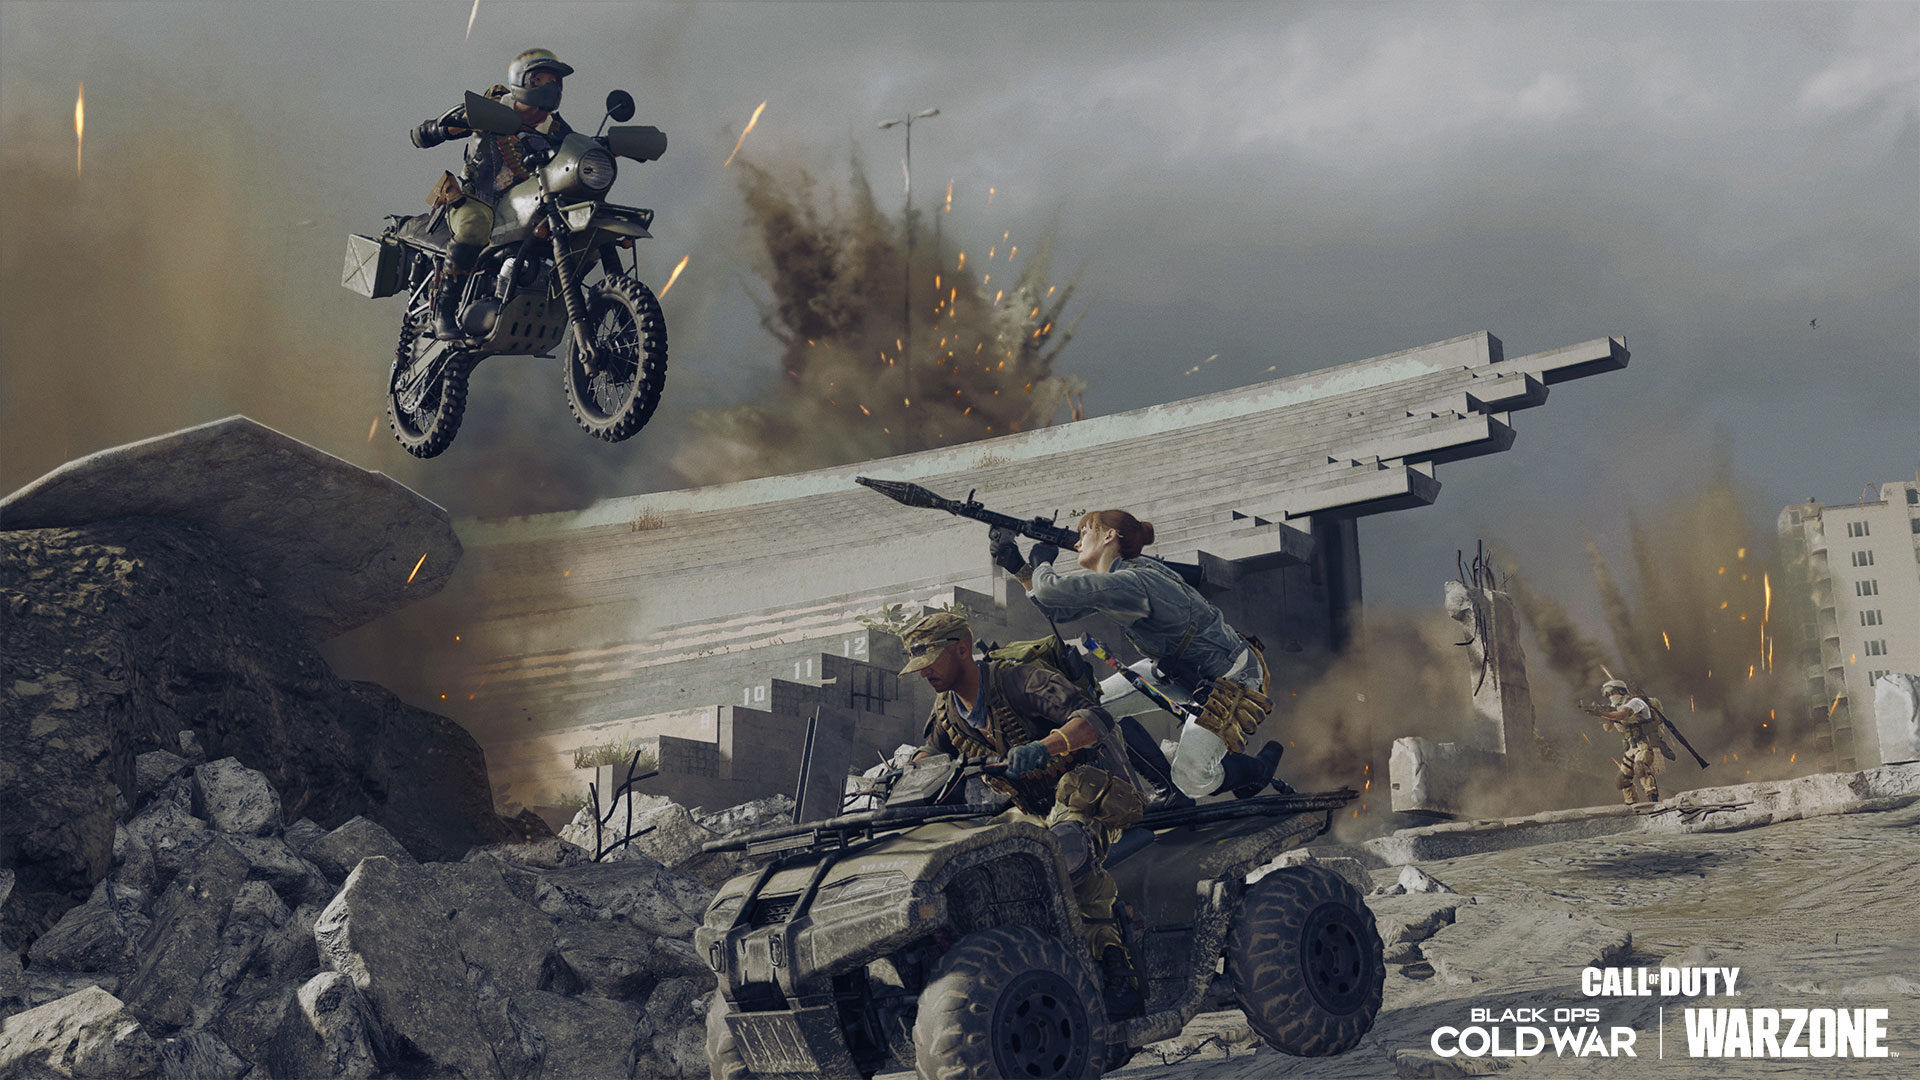 Woman on four-wheeler aiming rocket launcher at a man on a motorcycle